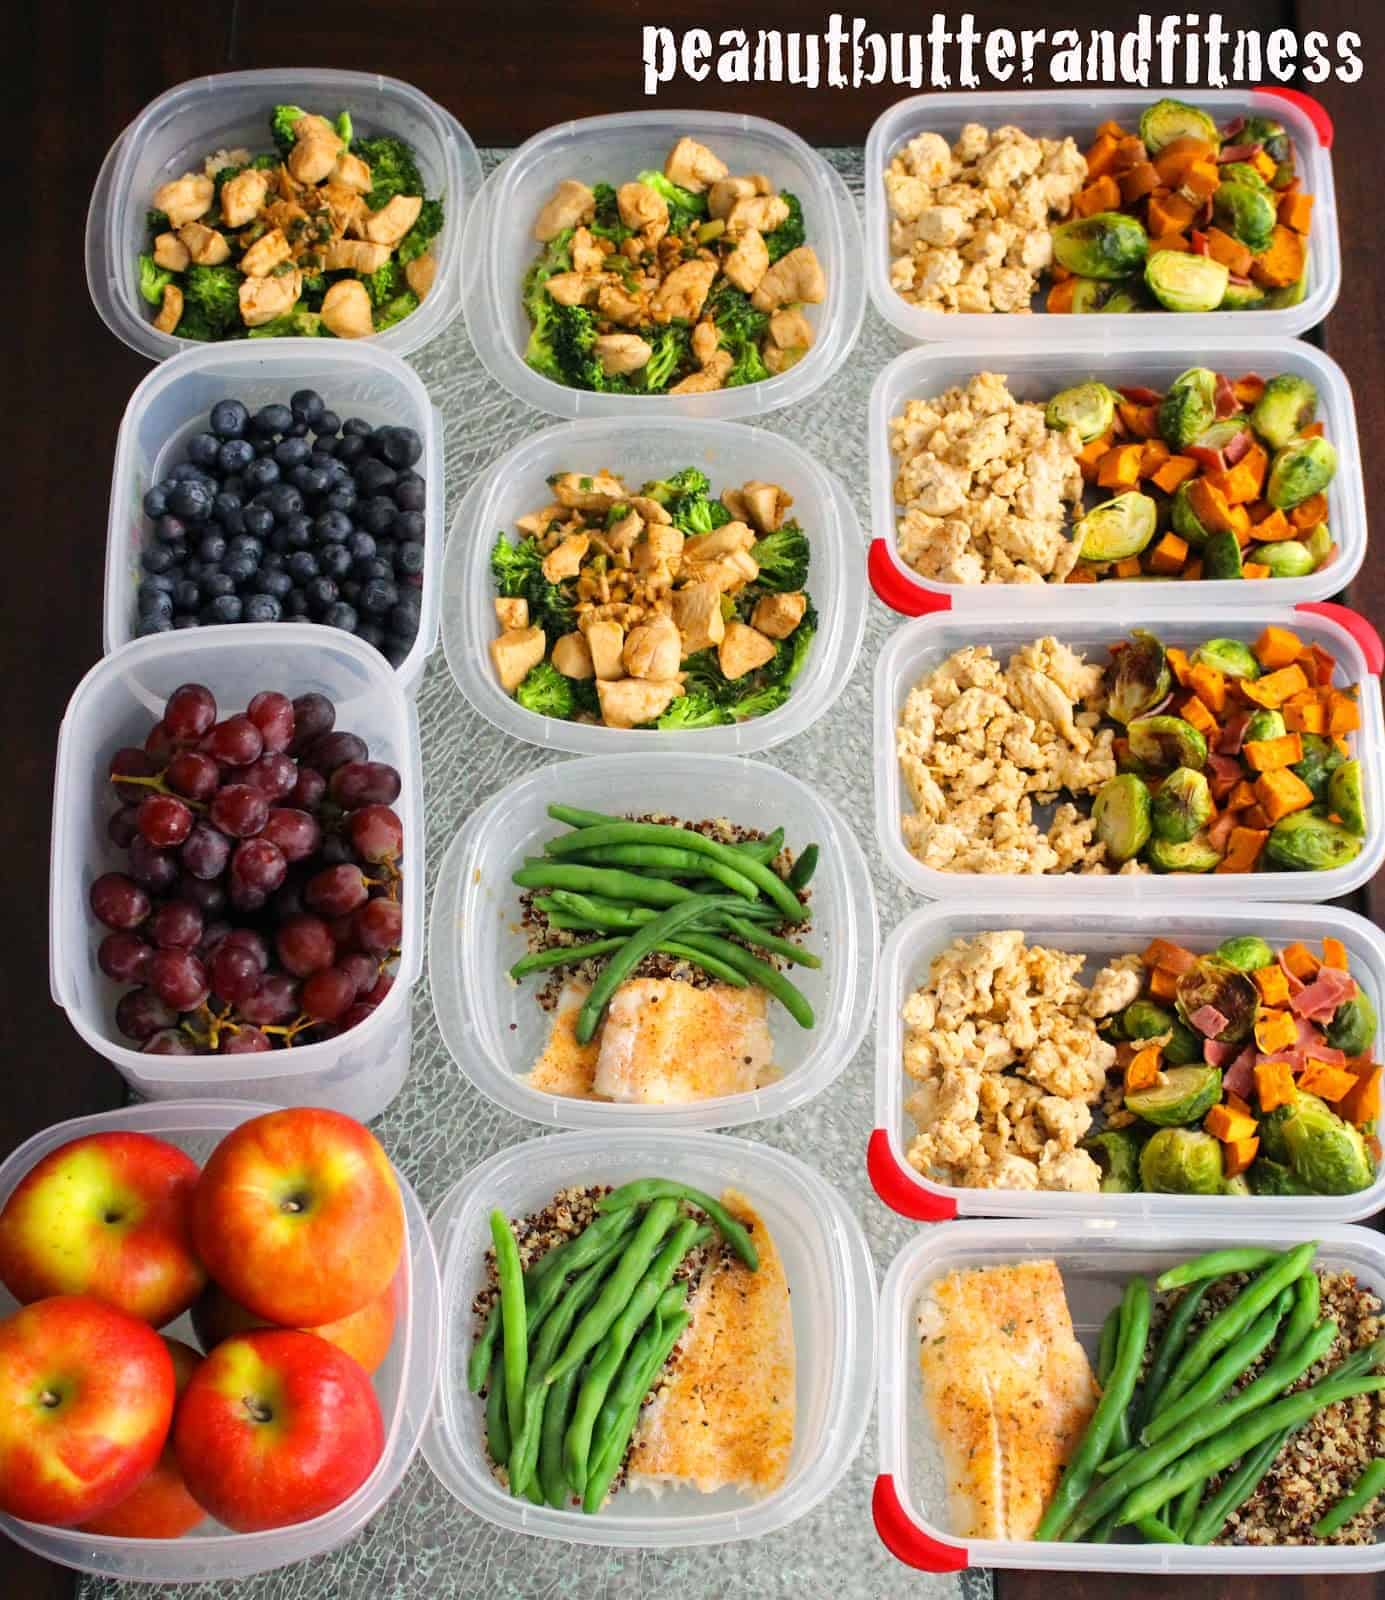 Prepared Meals for Weight Loss